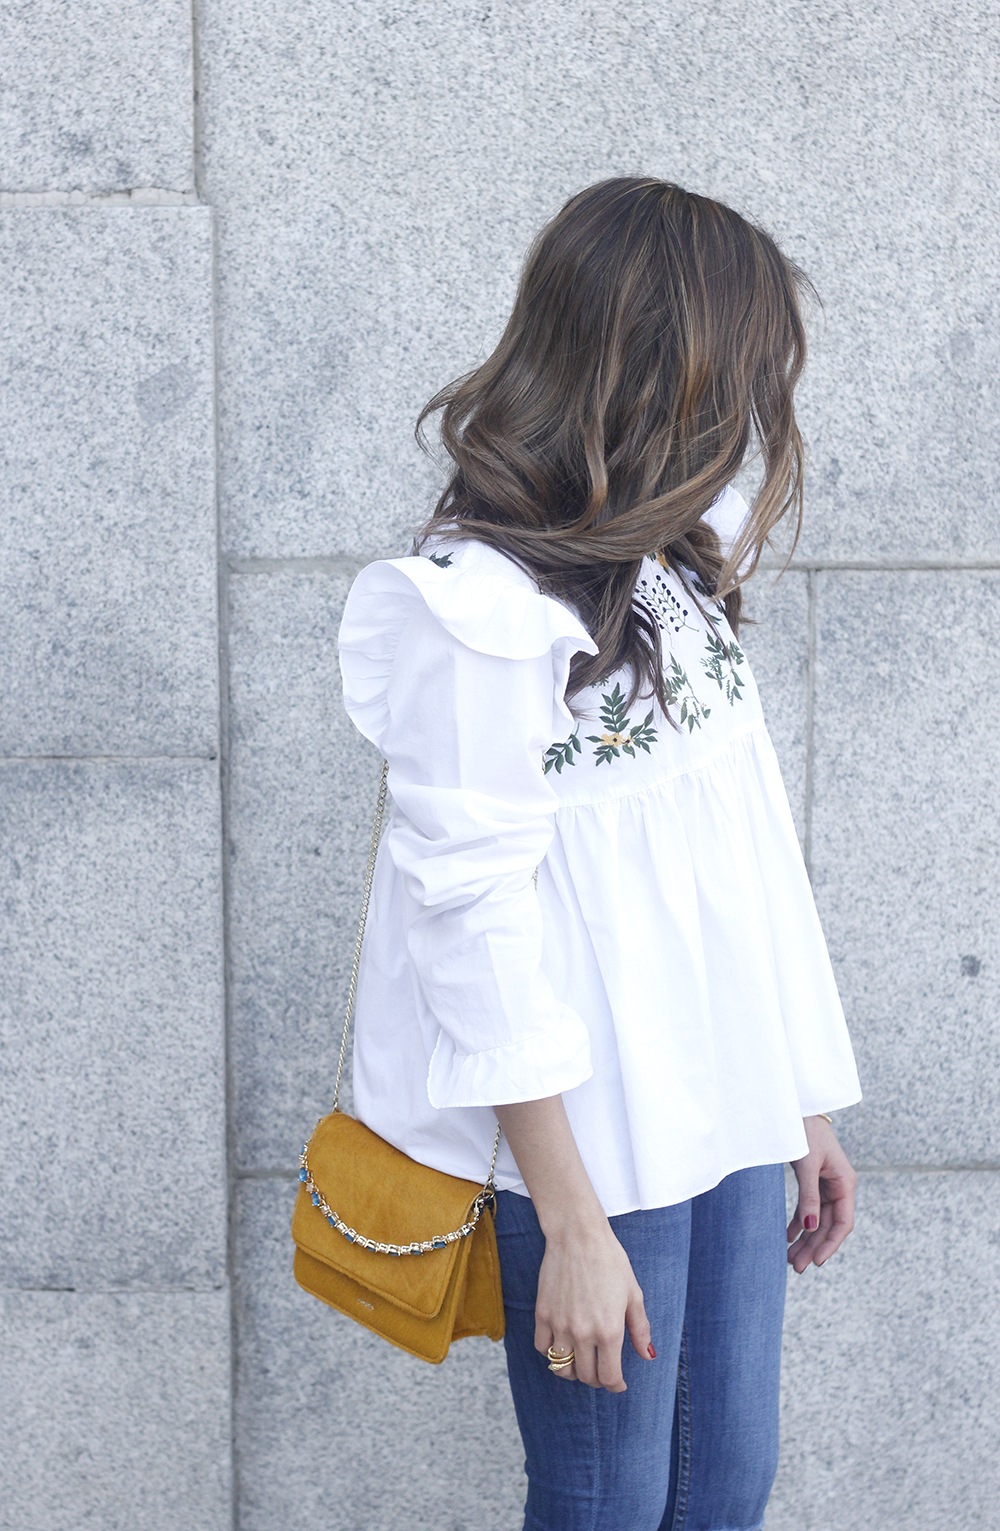 White blouse with ruffles and flower embroidery ripped jeans heels uterqüe bag fashion style outfit11